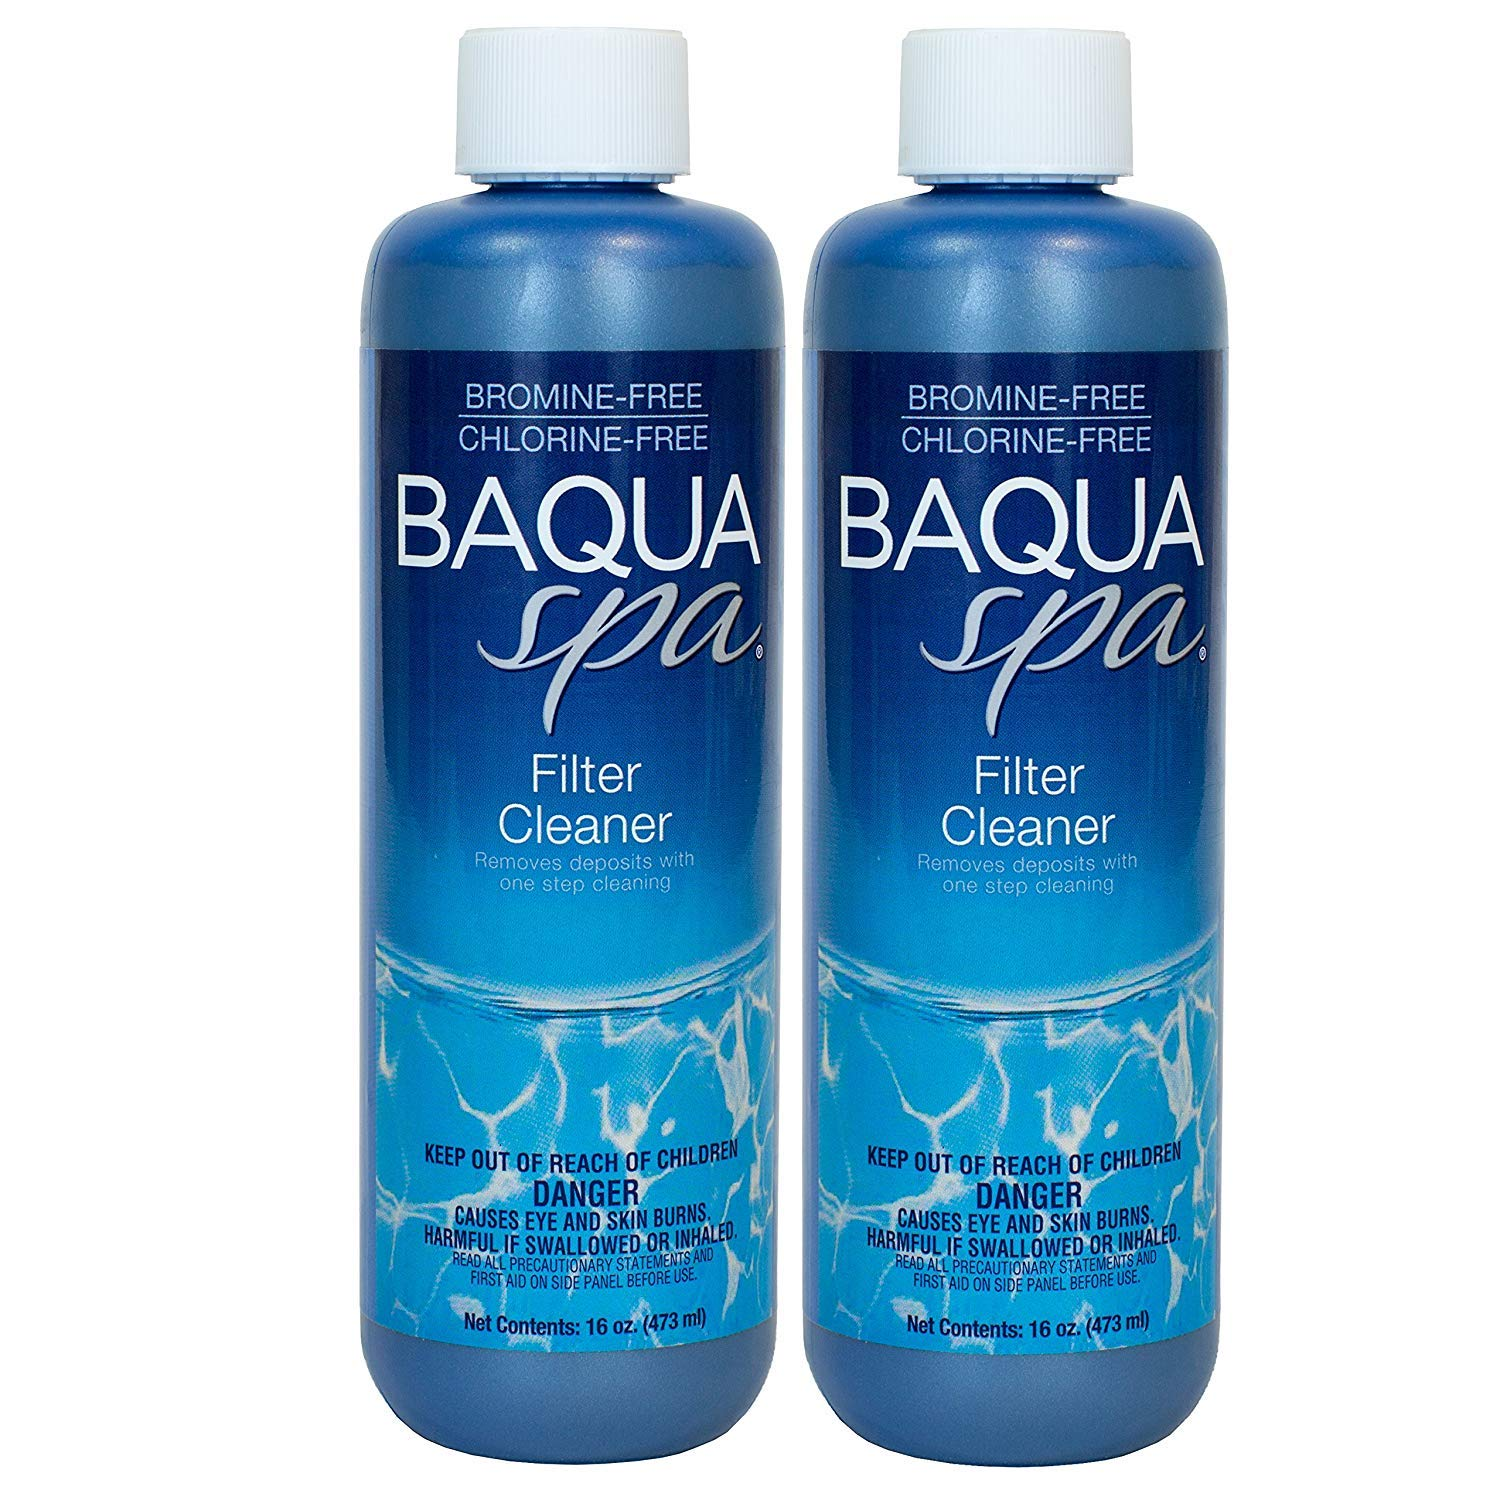 Baqua Spa Filter Cleaner (1 pt) (2 pack) by Baqua Spa